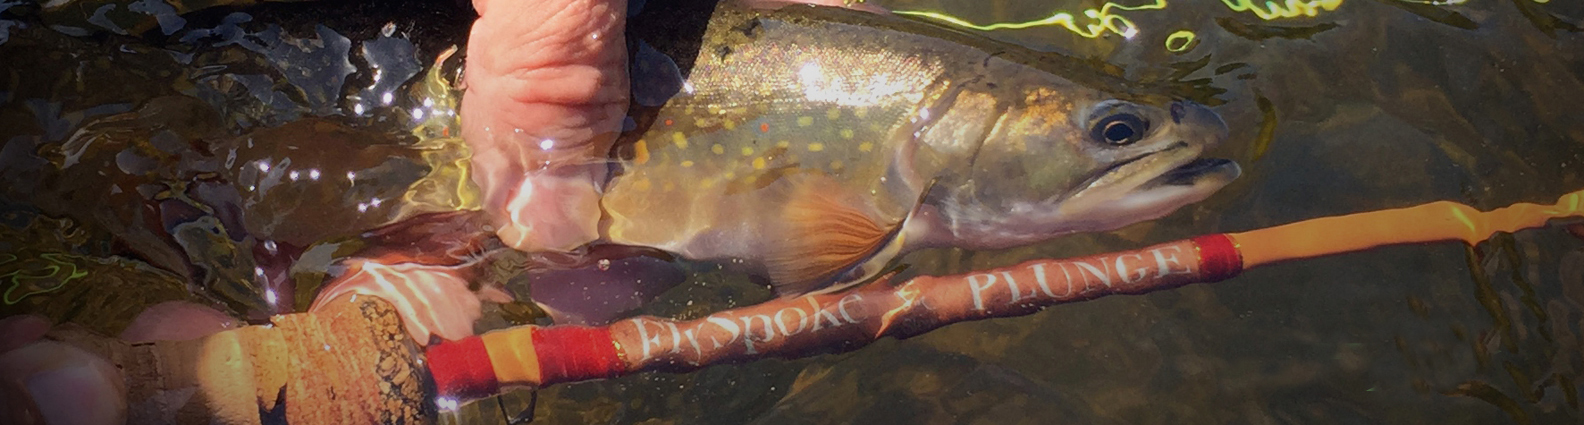 plunge-brook-trout1new.jpg